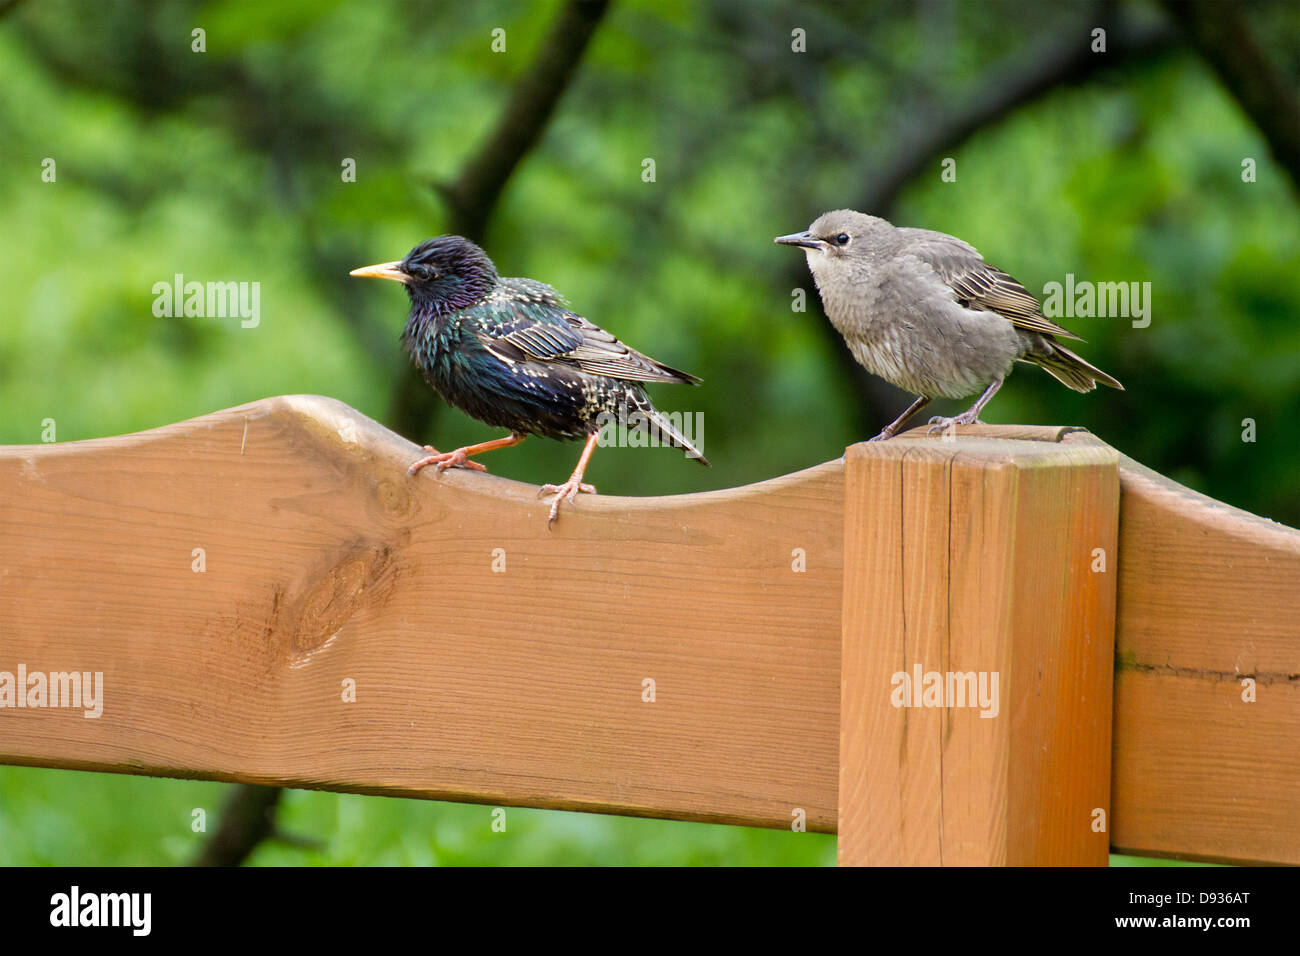 Two birds sitting side by side on the fence. One is a starling. - Stock Image